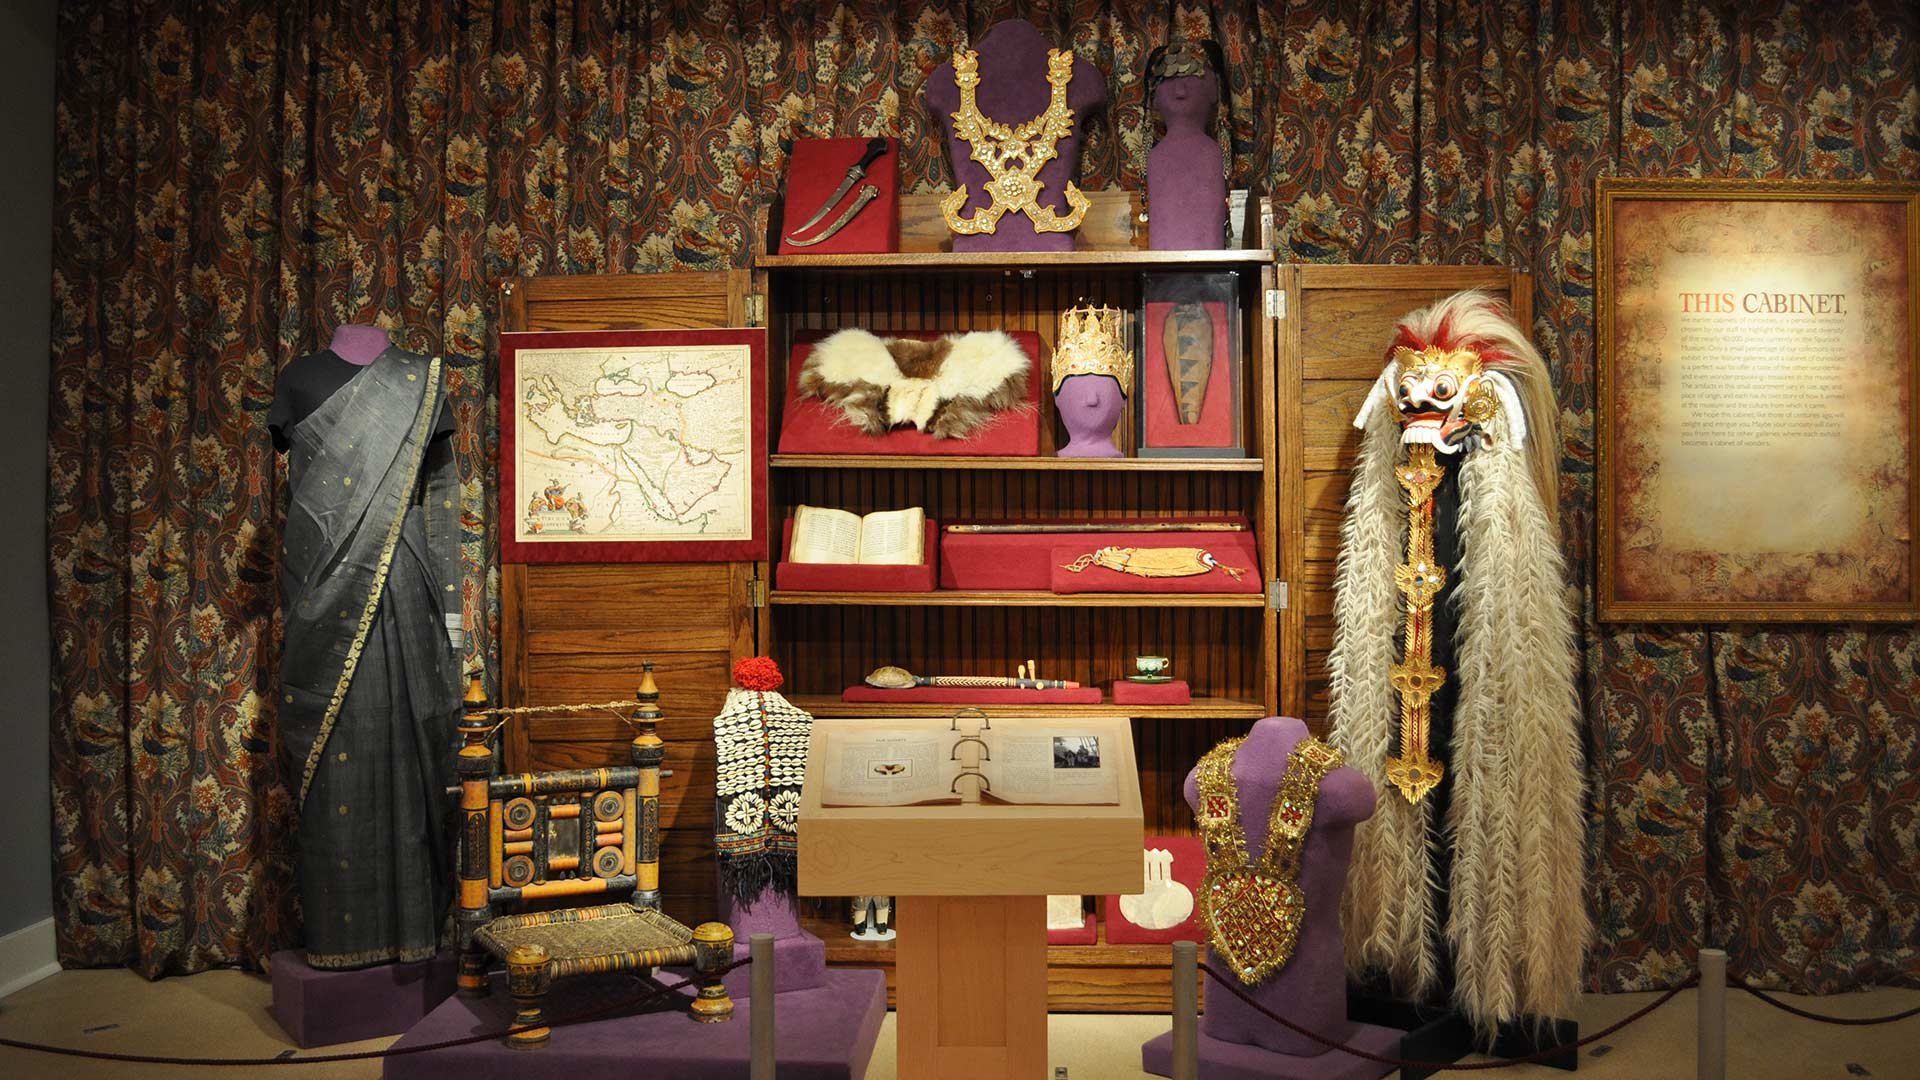 clothing, accessories and headdress